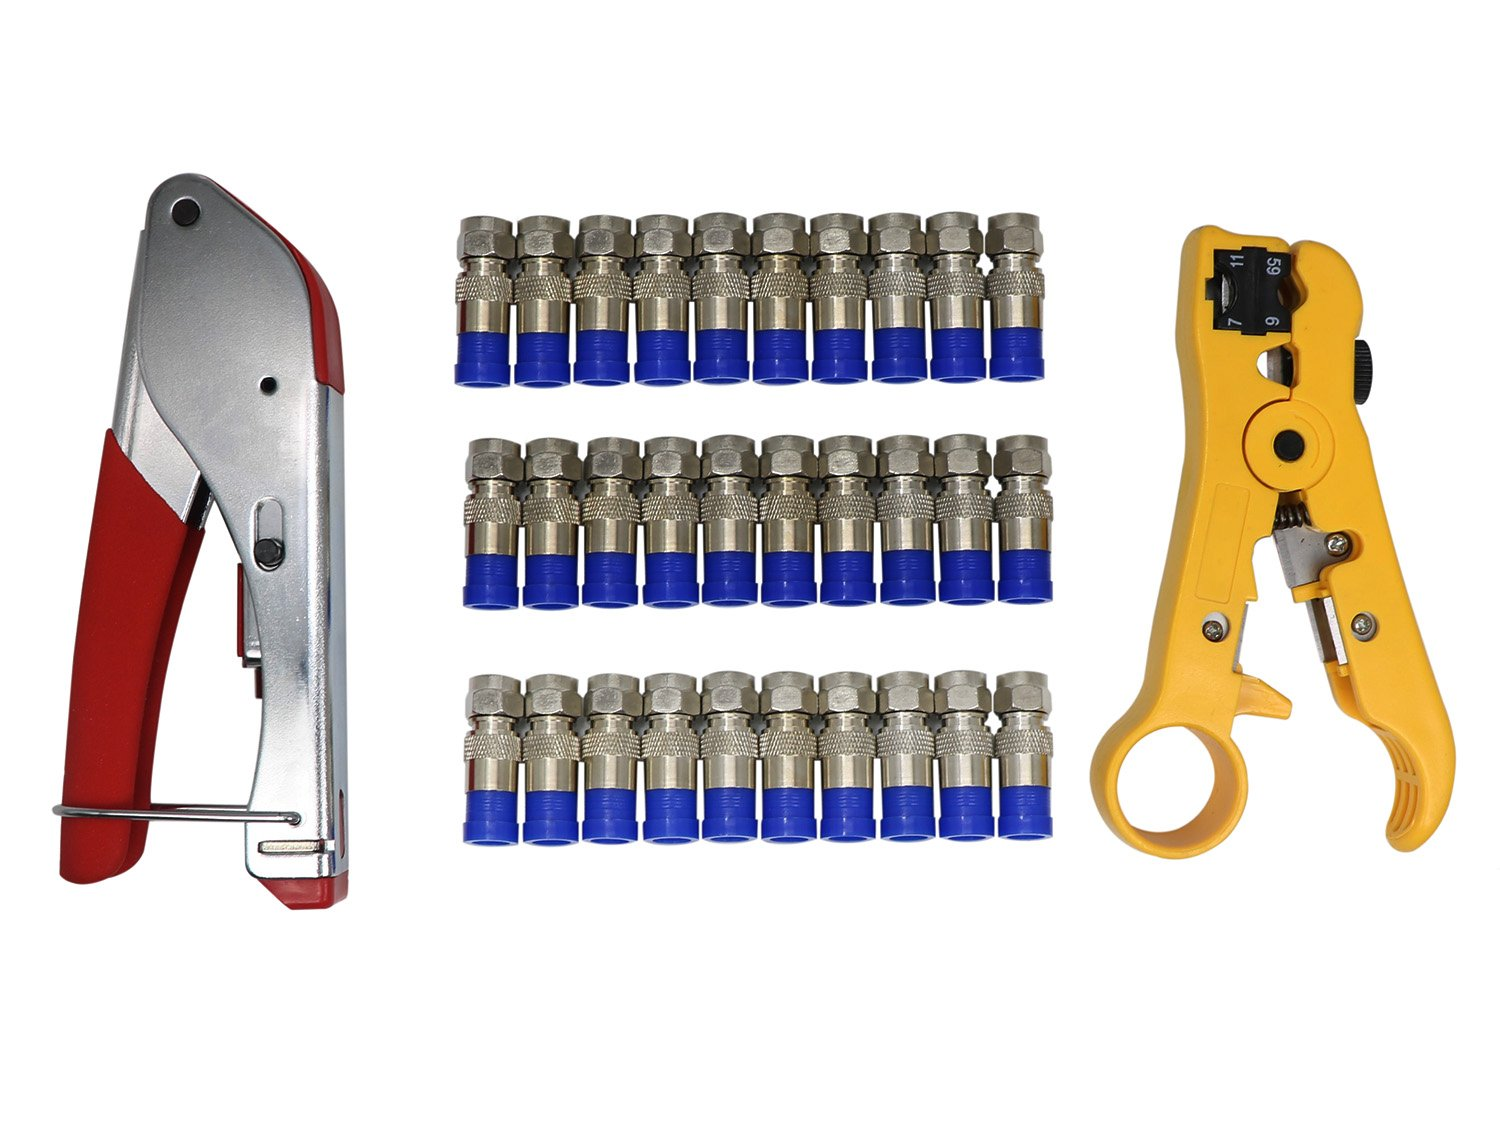 Coax Cable Crimper Kit Tool for RG6 RG59 Coaxial Compression Tool Fitting Wire Stripper with 30 PCS F Compression Connectors